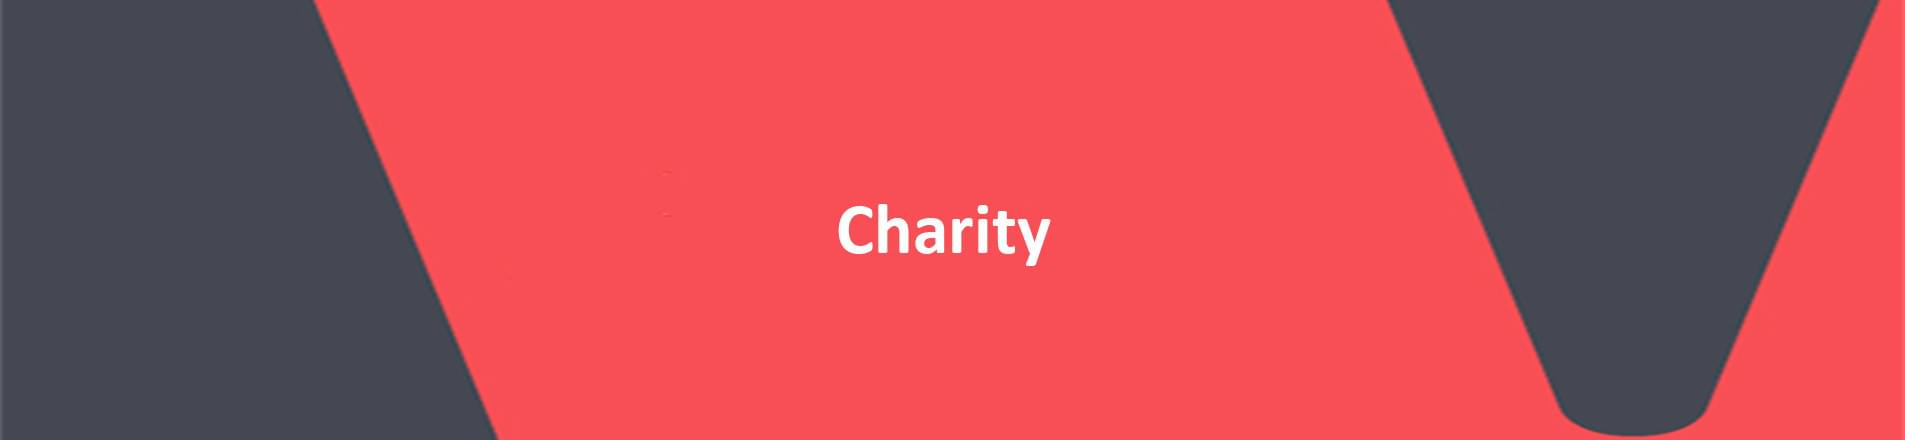 Word Charity on red VERCIDA  branded background